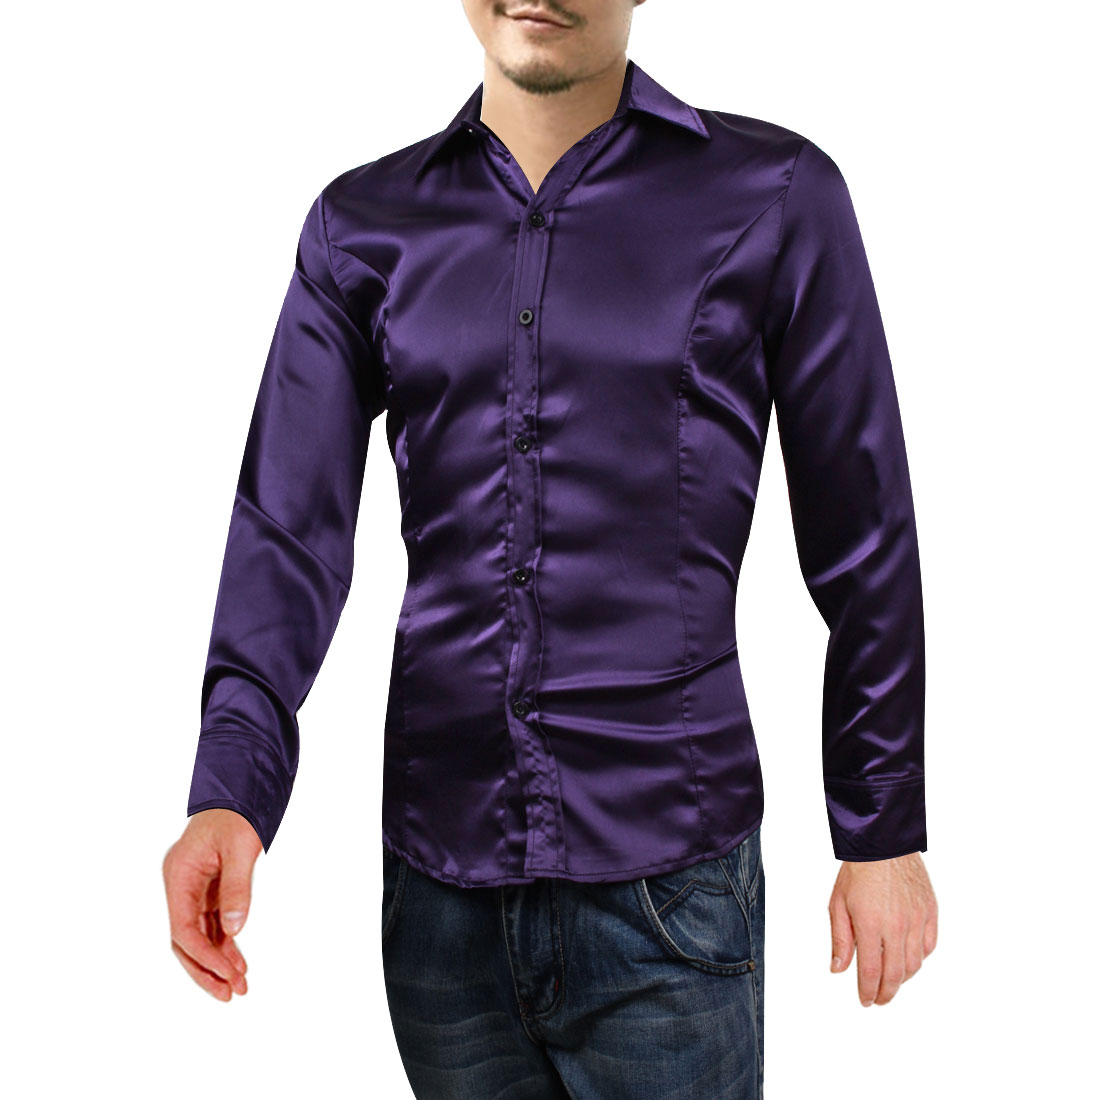 Men Buttons Up Point Collar Long-sleeved Buttons Shirt Purple M